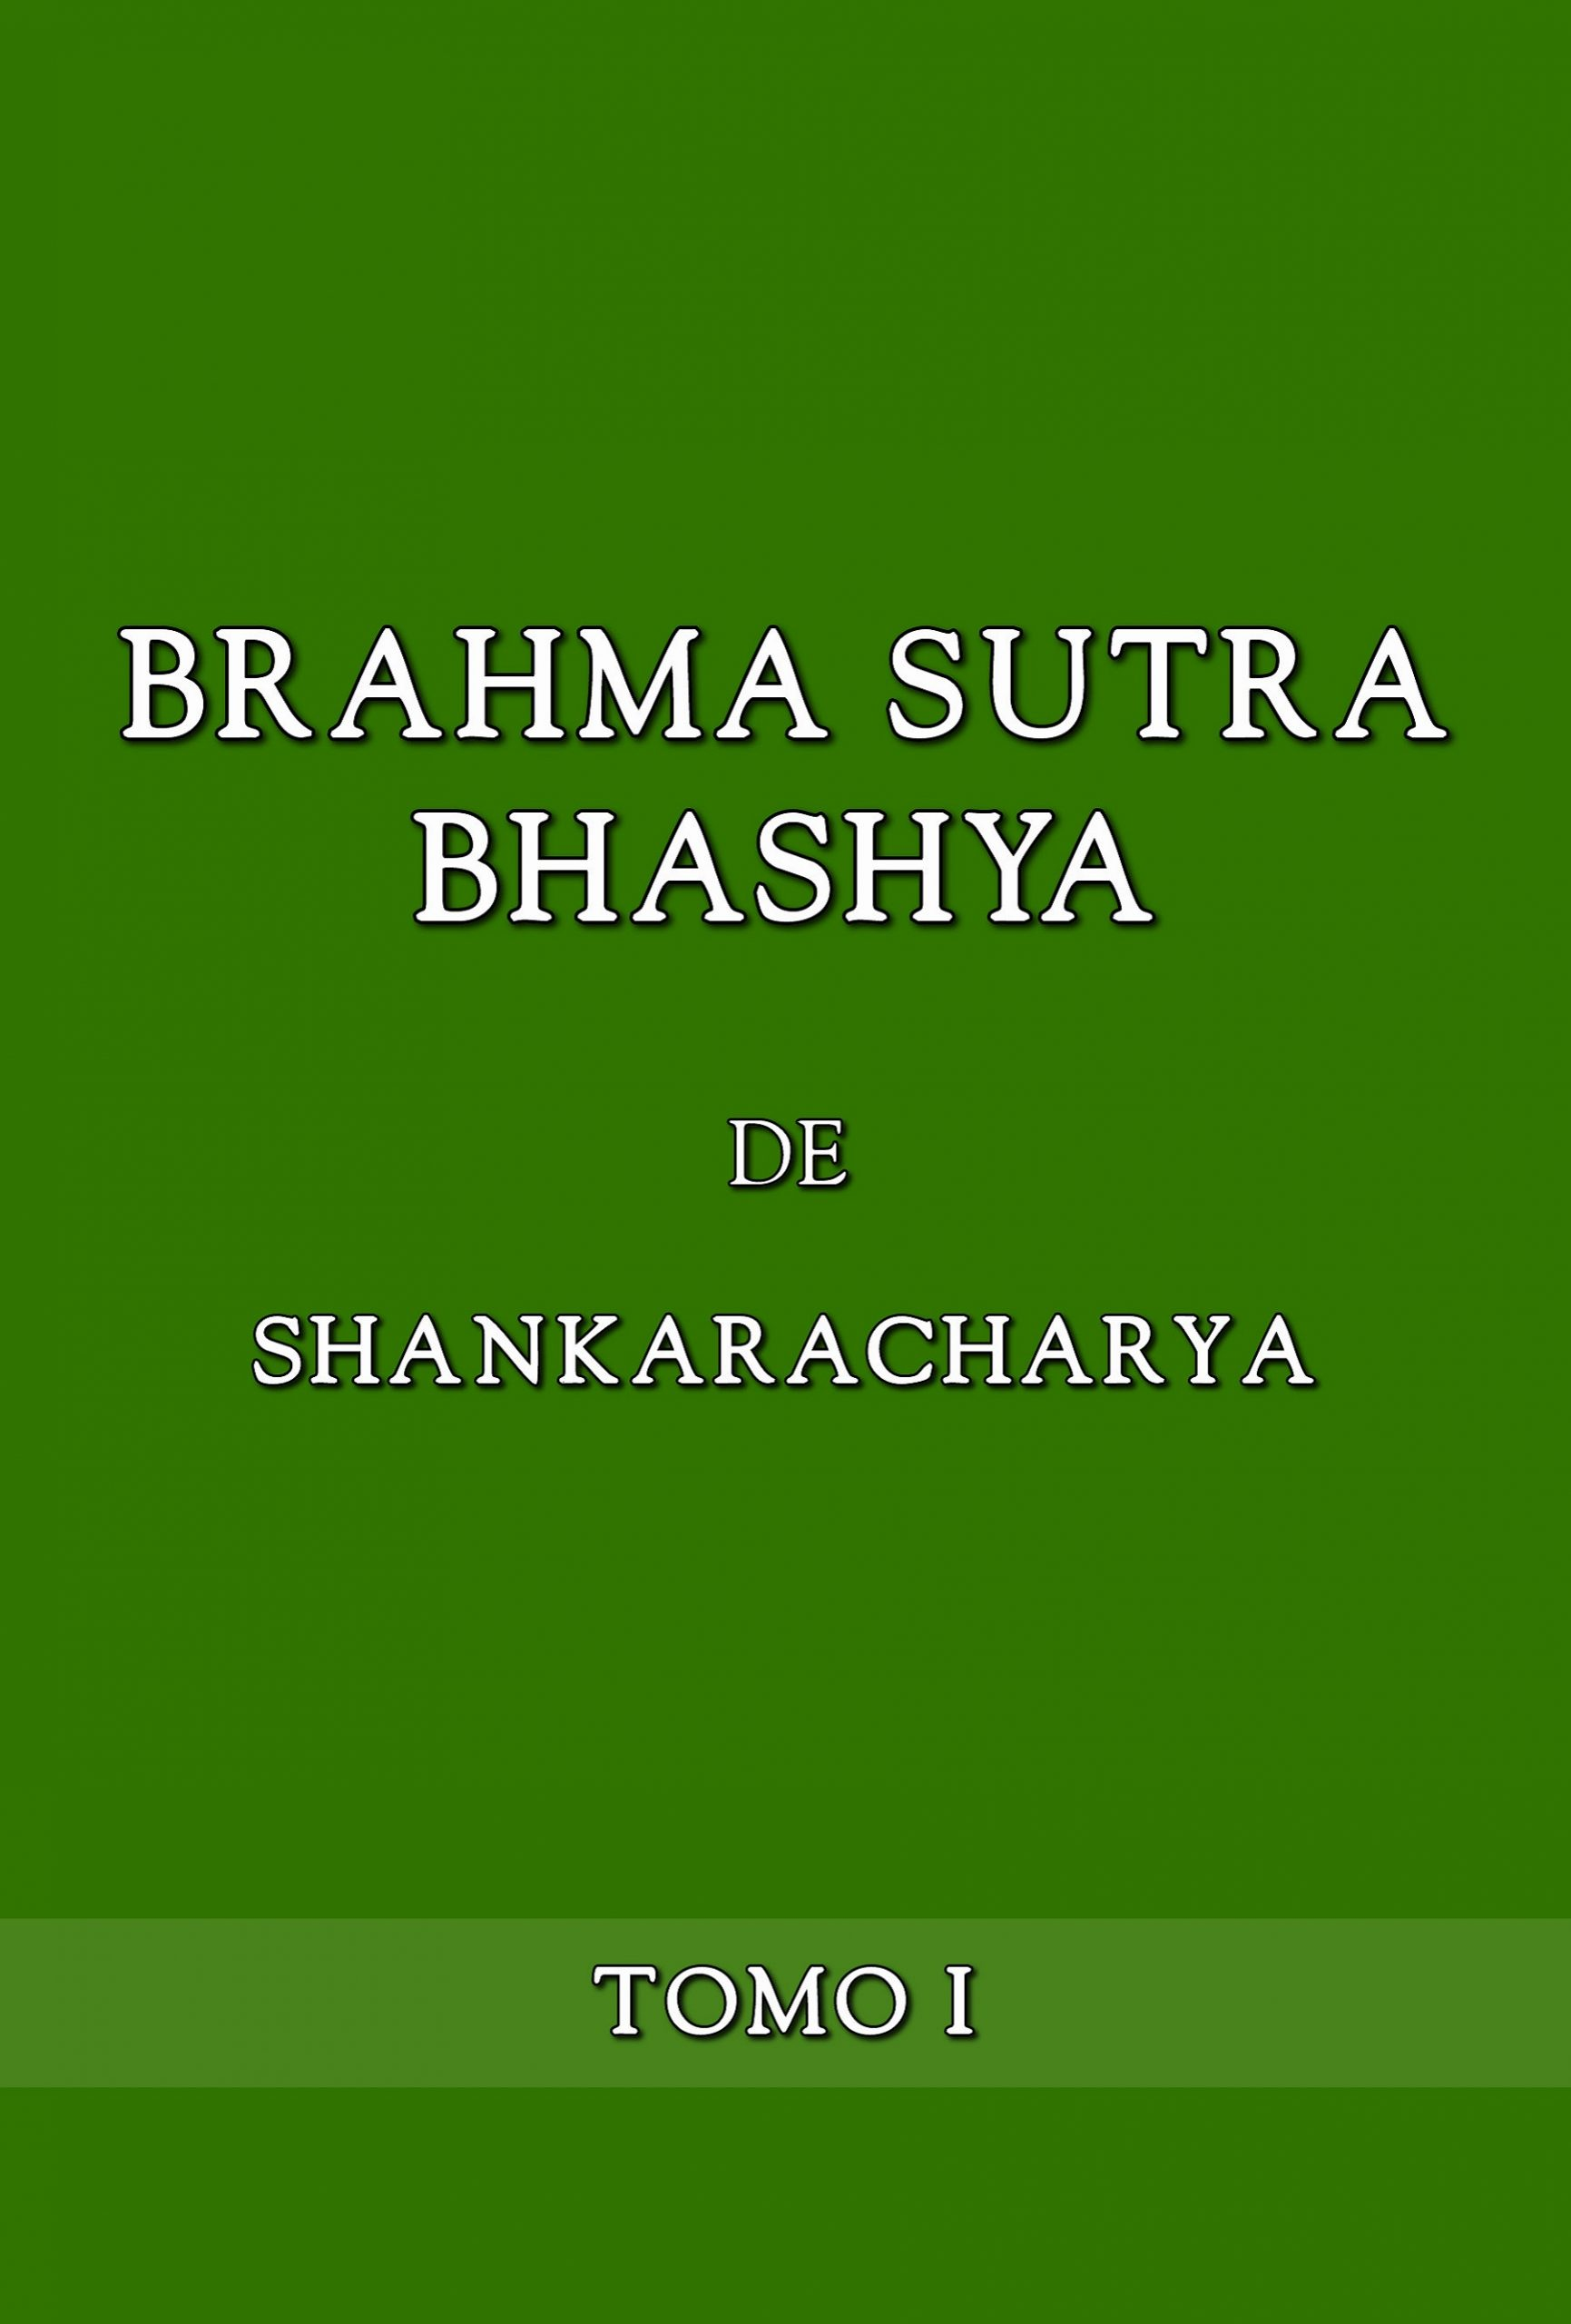 COVER Brahma Sutra BhashyaT1 scaled